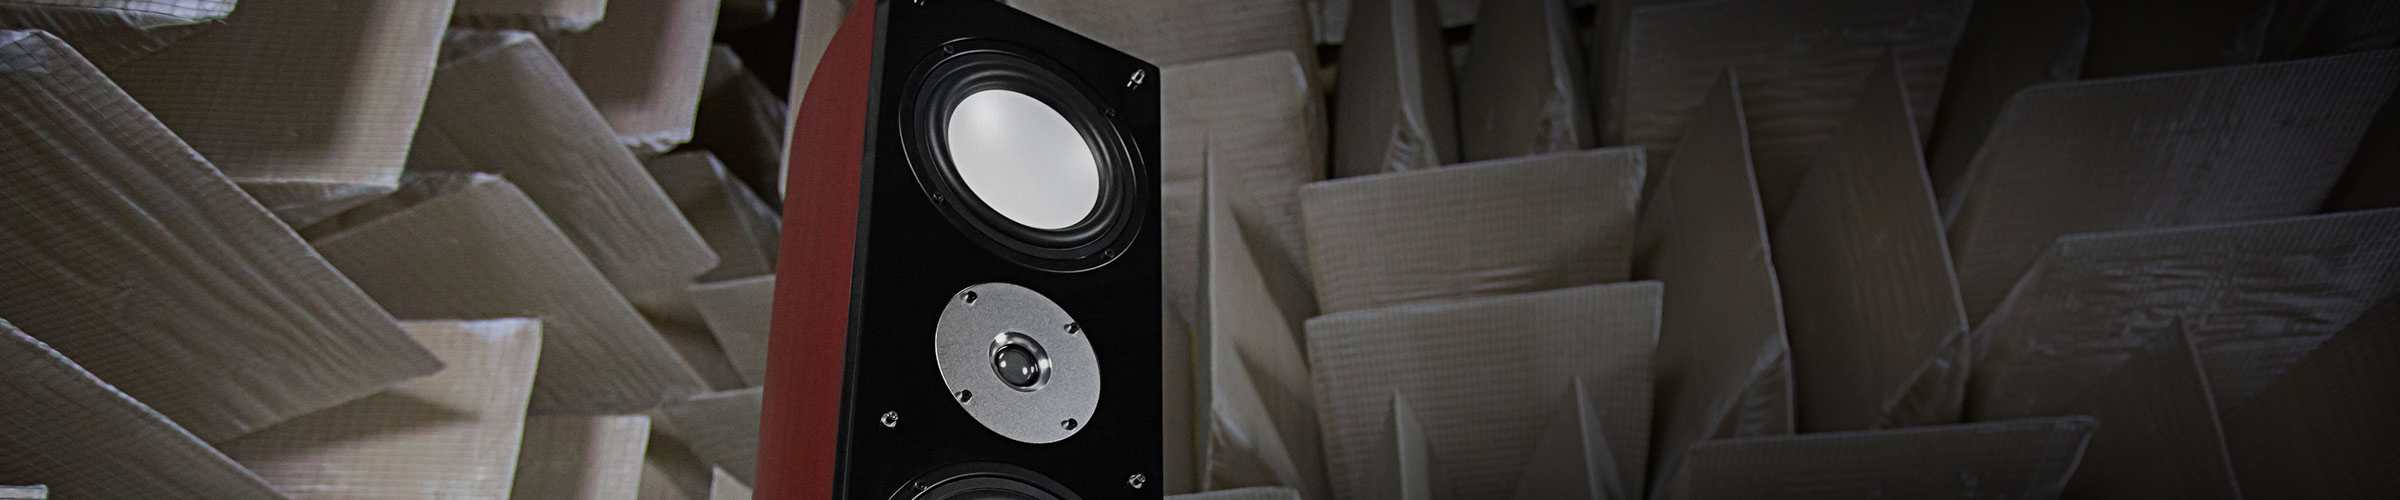 XL7FBK Floorstanding Speakers Applications